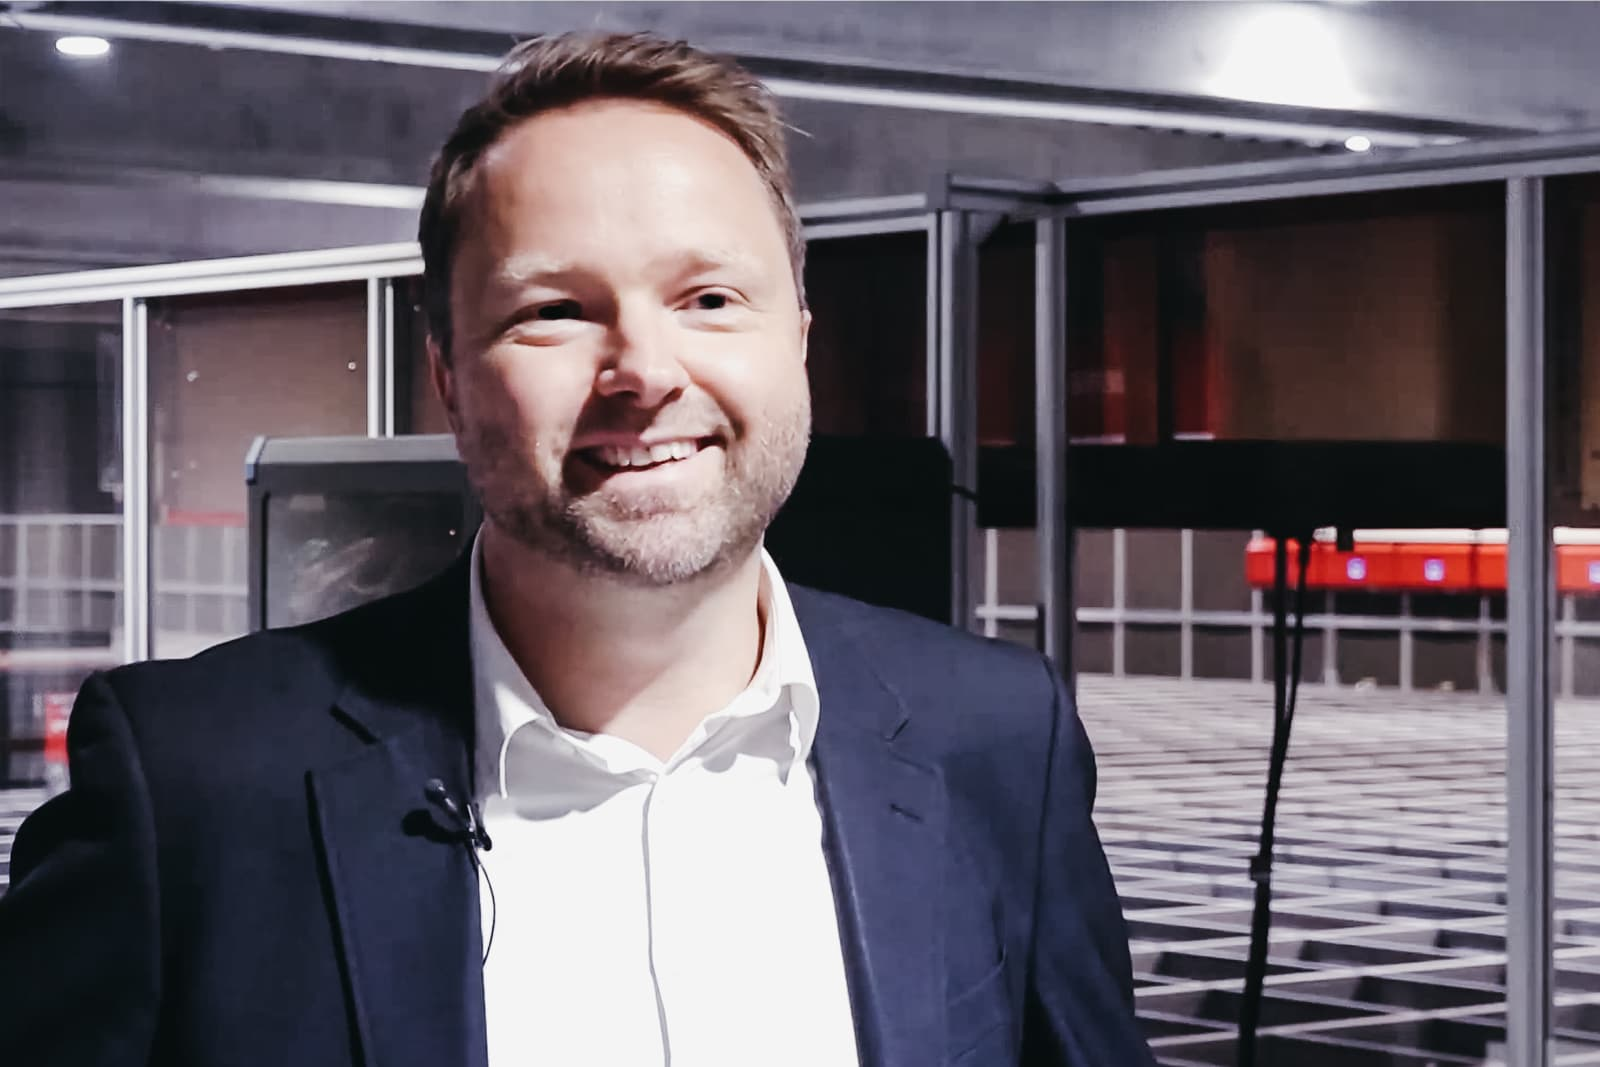 Ivan Jæger Christiansen, Managing Director of Proshop